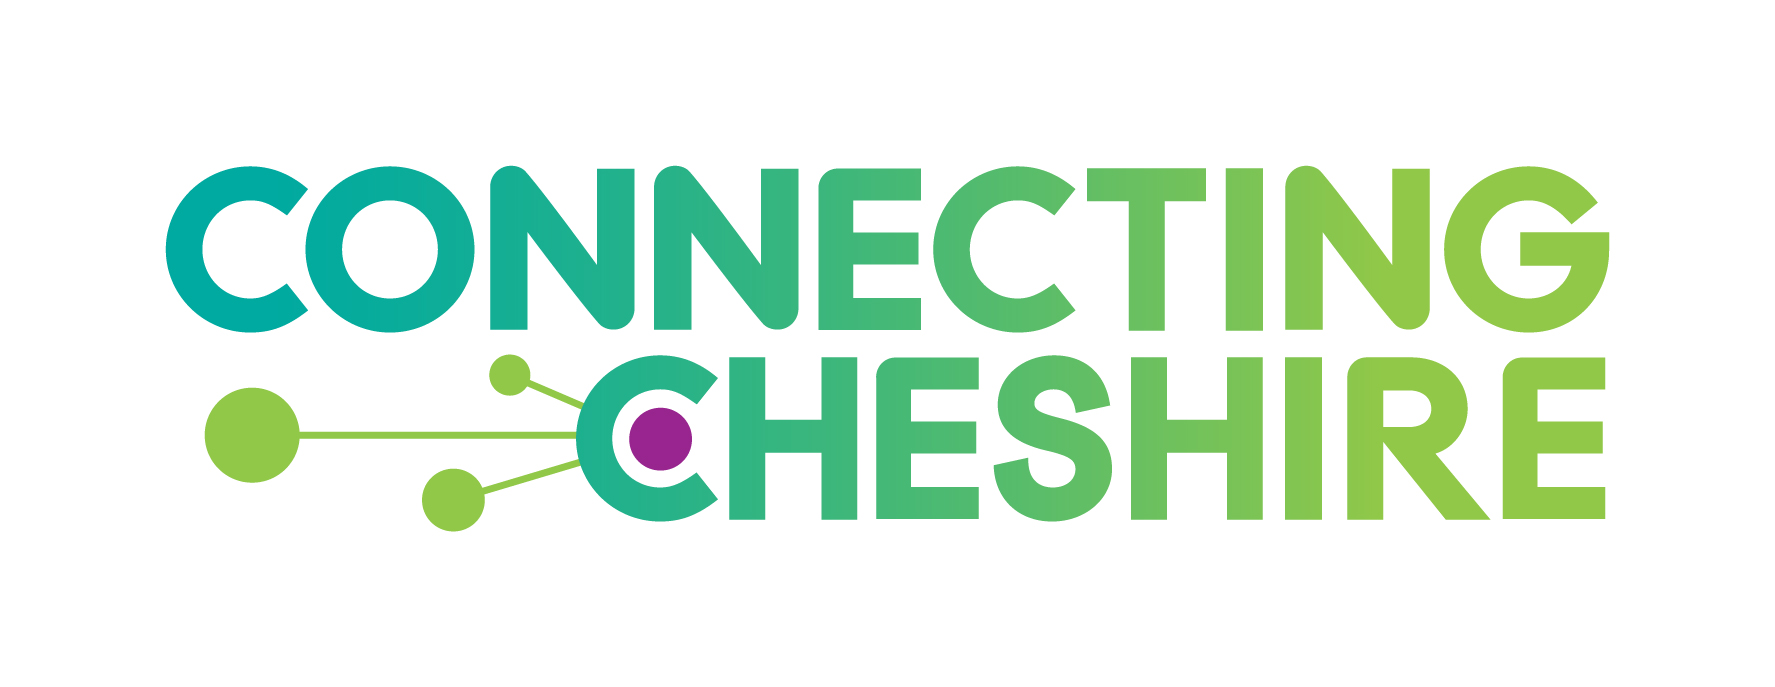 The Connecting Cheshire logo.